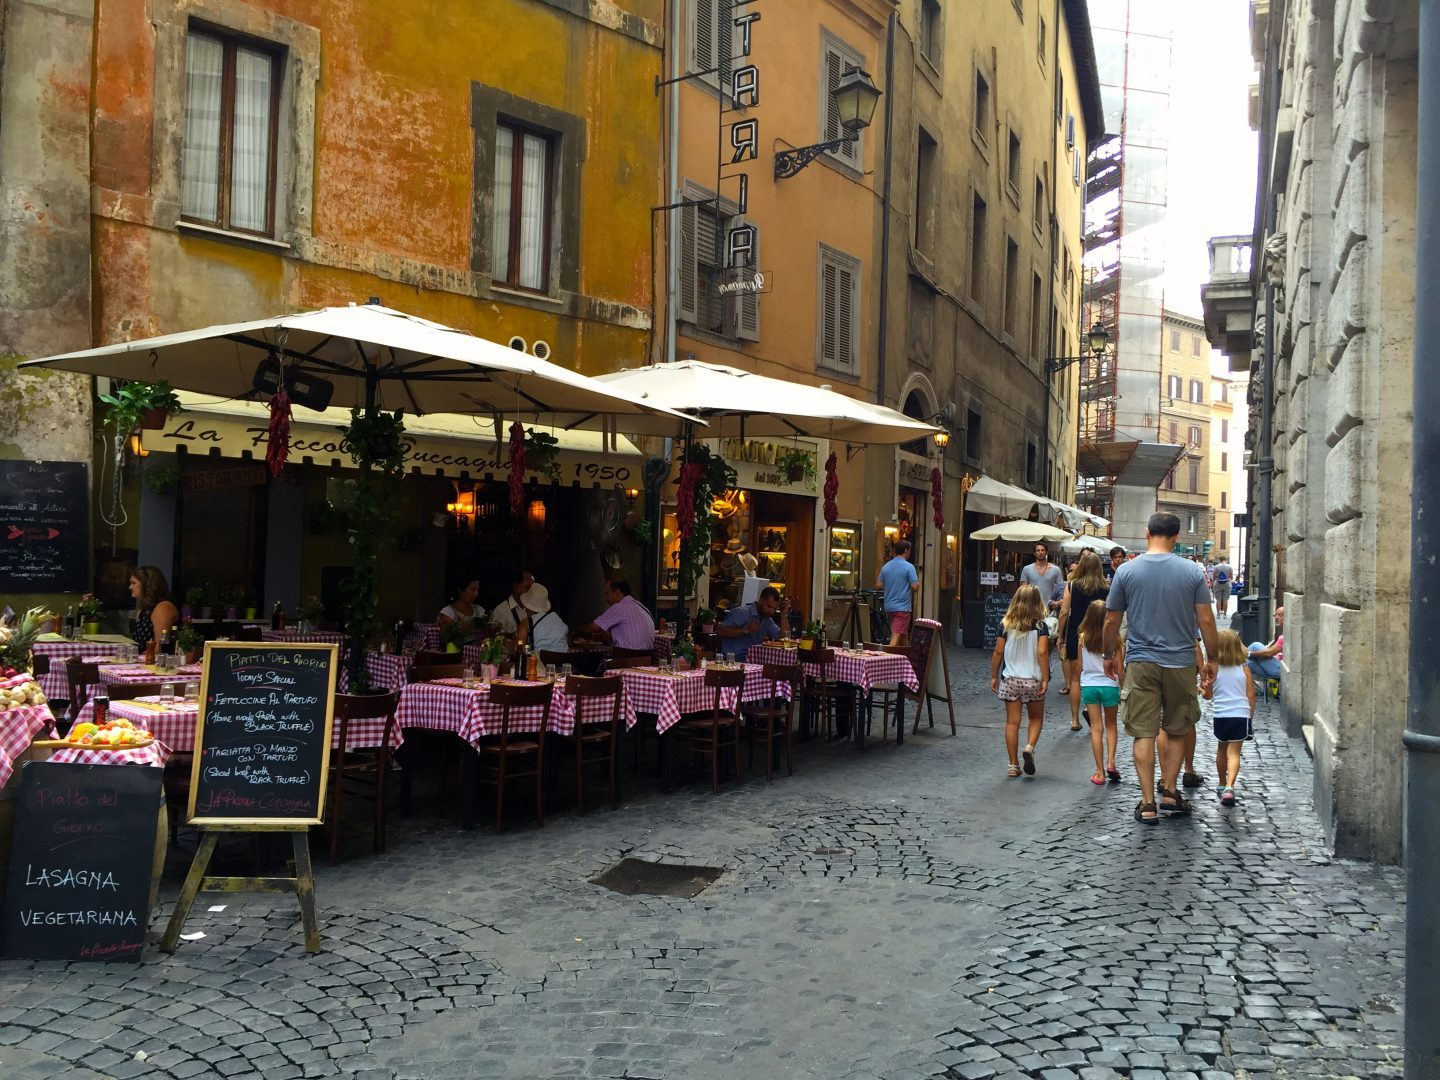 Strolling along the cobble stone streets in Rome.